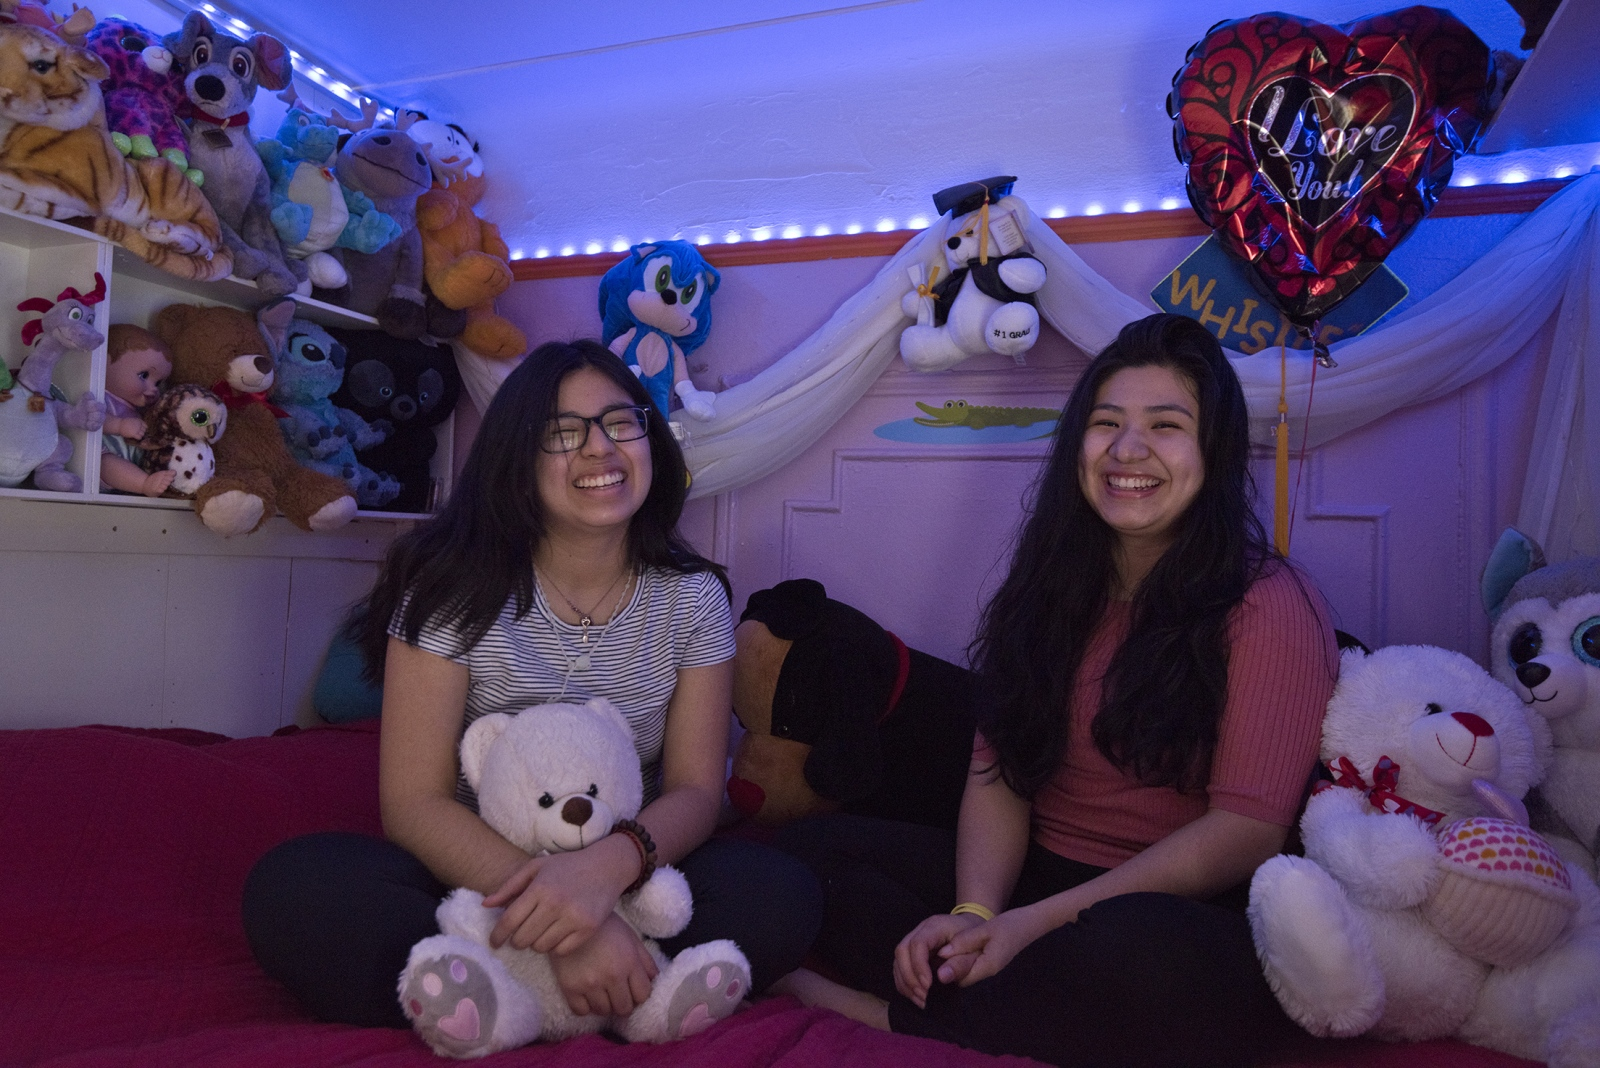 Portray t of Lizbeth and her sister Adriana in her room